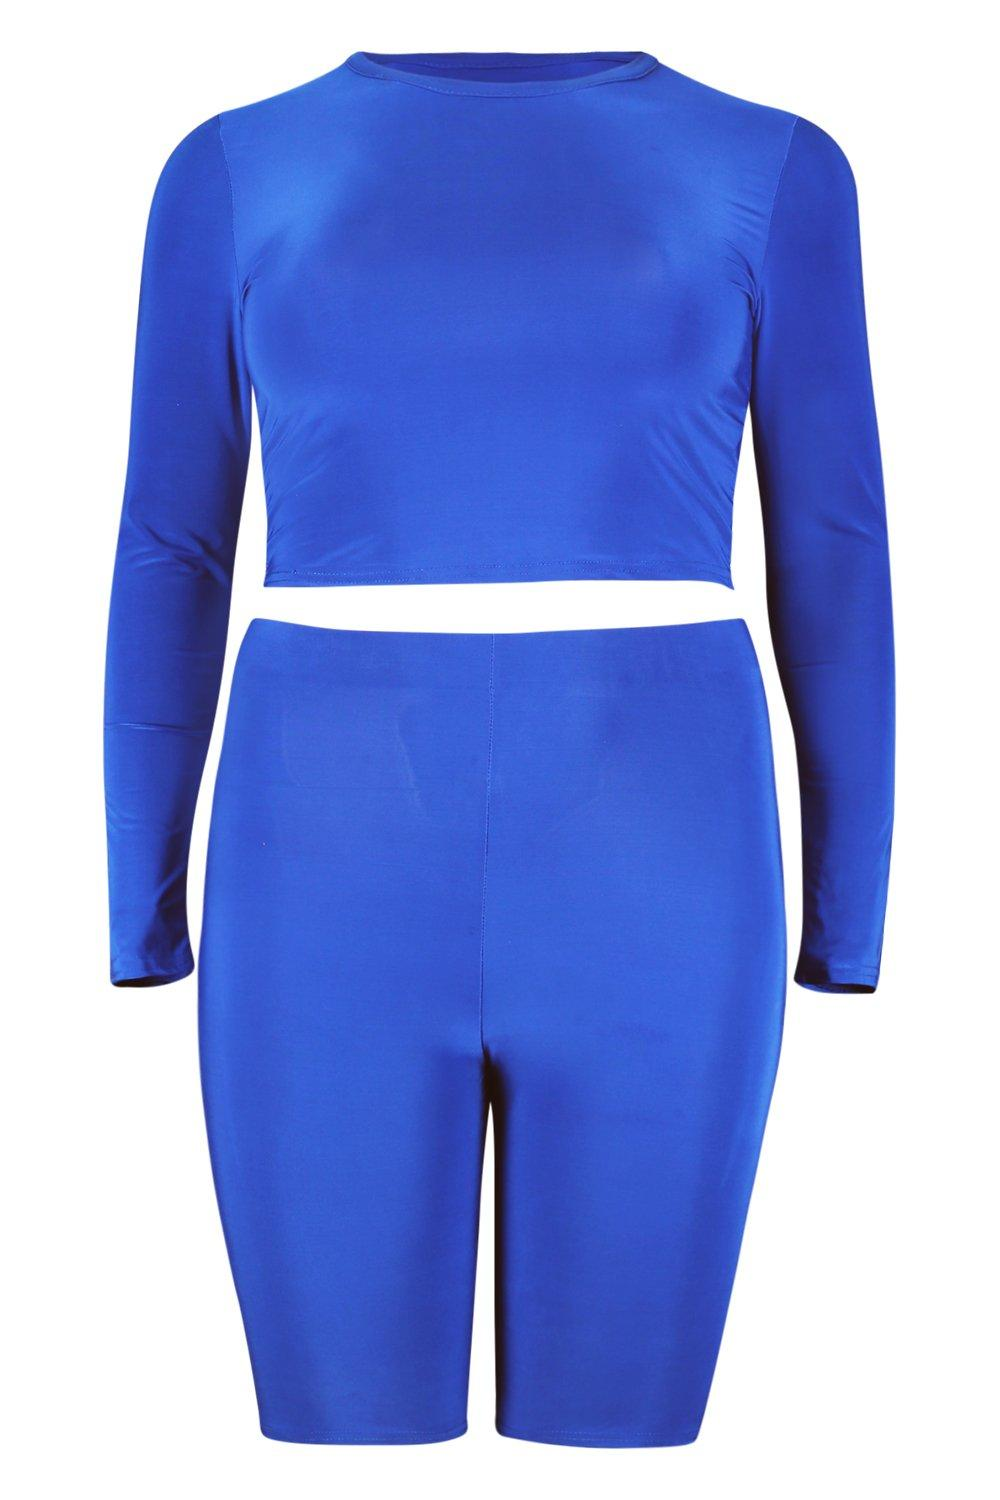 Long Slinky cobalt amp; Sleeve Short Co Ord Cycle Plus Crop qZdHxwg5H